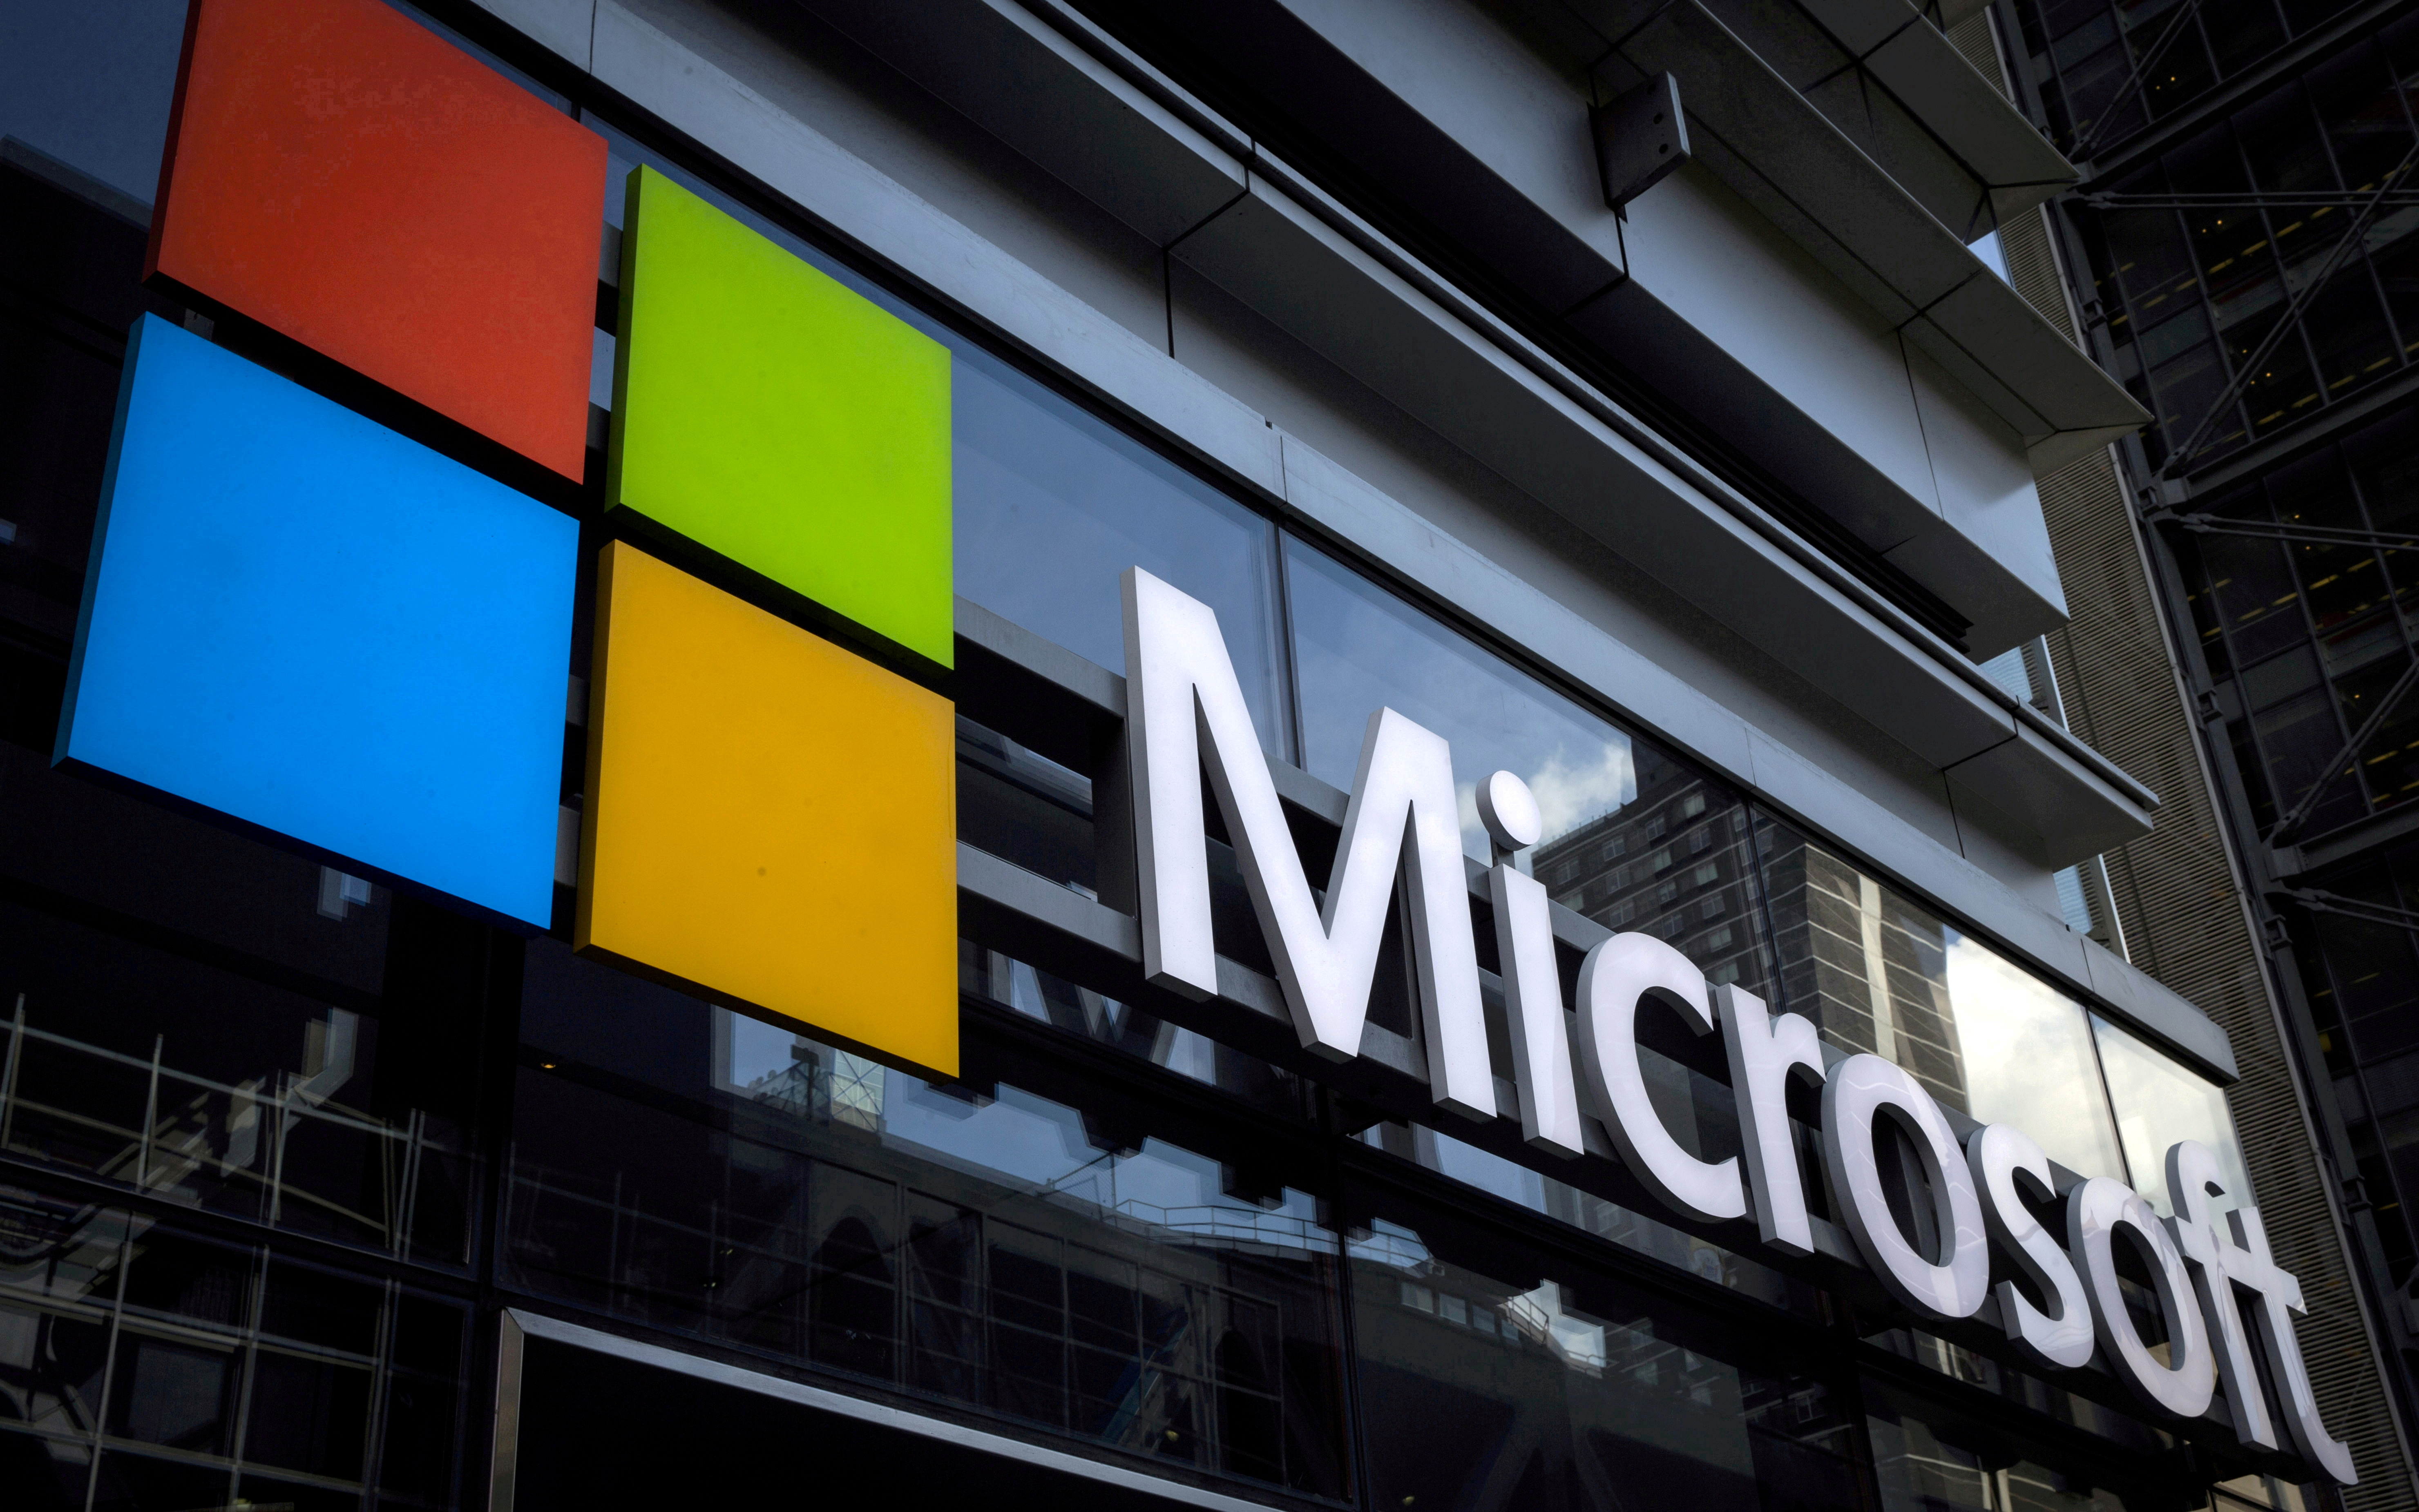 A Microsoft logo is seen on an office building in New York City, U.S. on July 28, 2015. REUTERS/Mike Segar